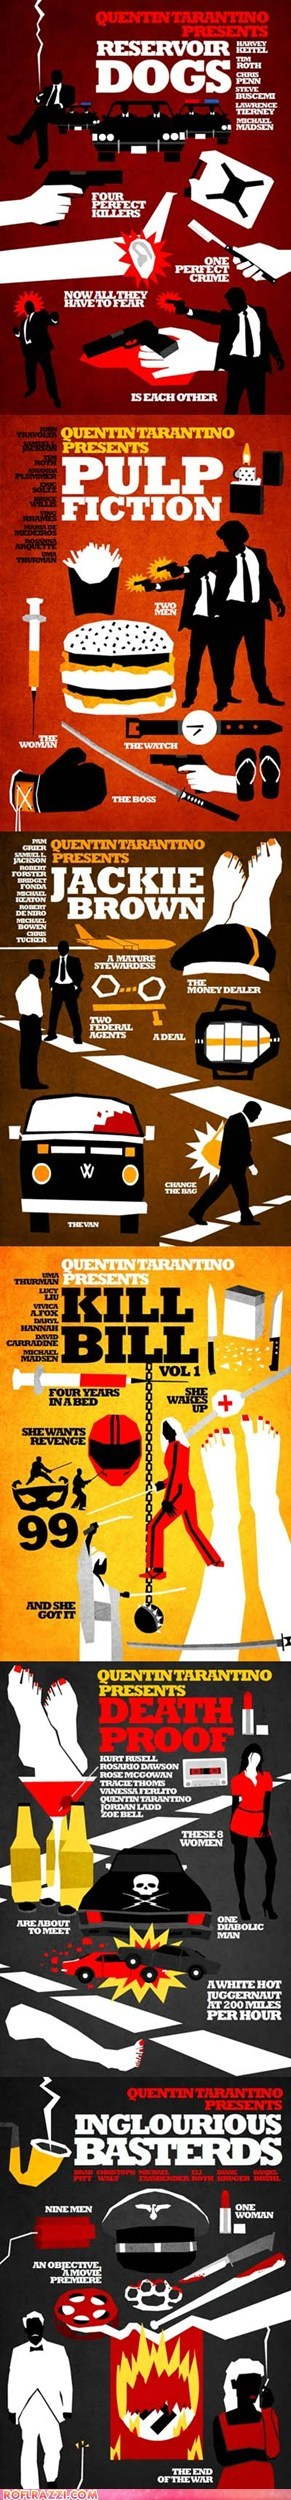 art celeb cool director Kill Bill Movie posters pulp fiction quentin tarantino - 6349124096